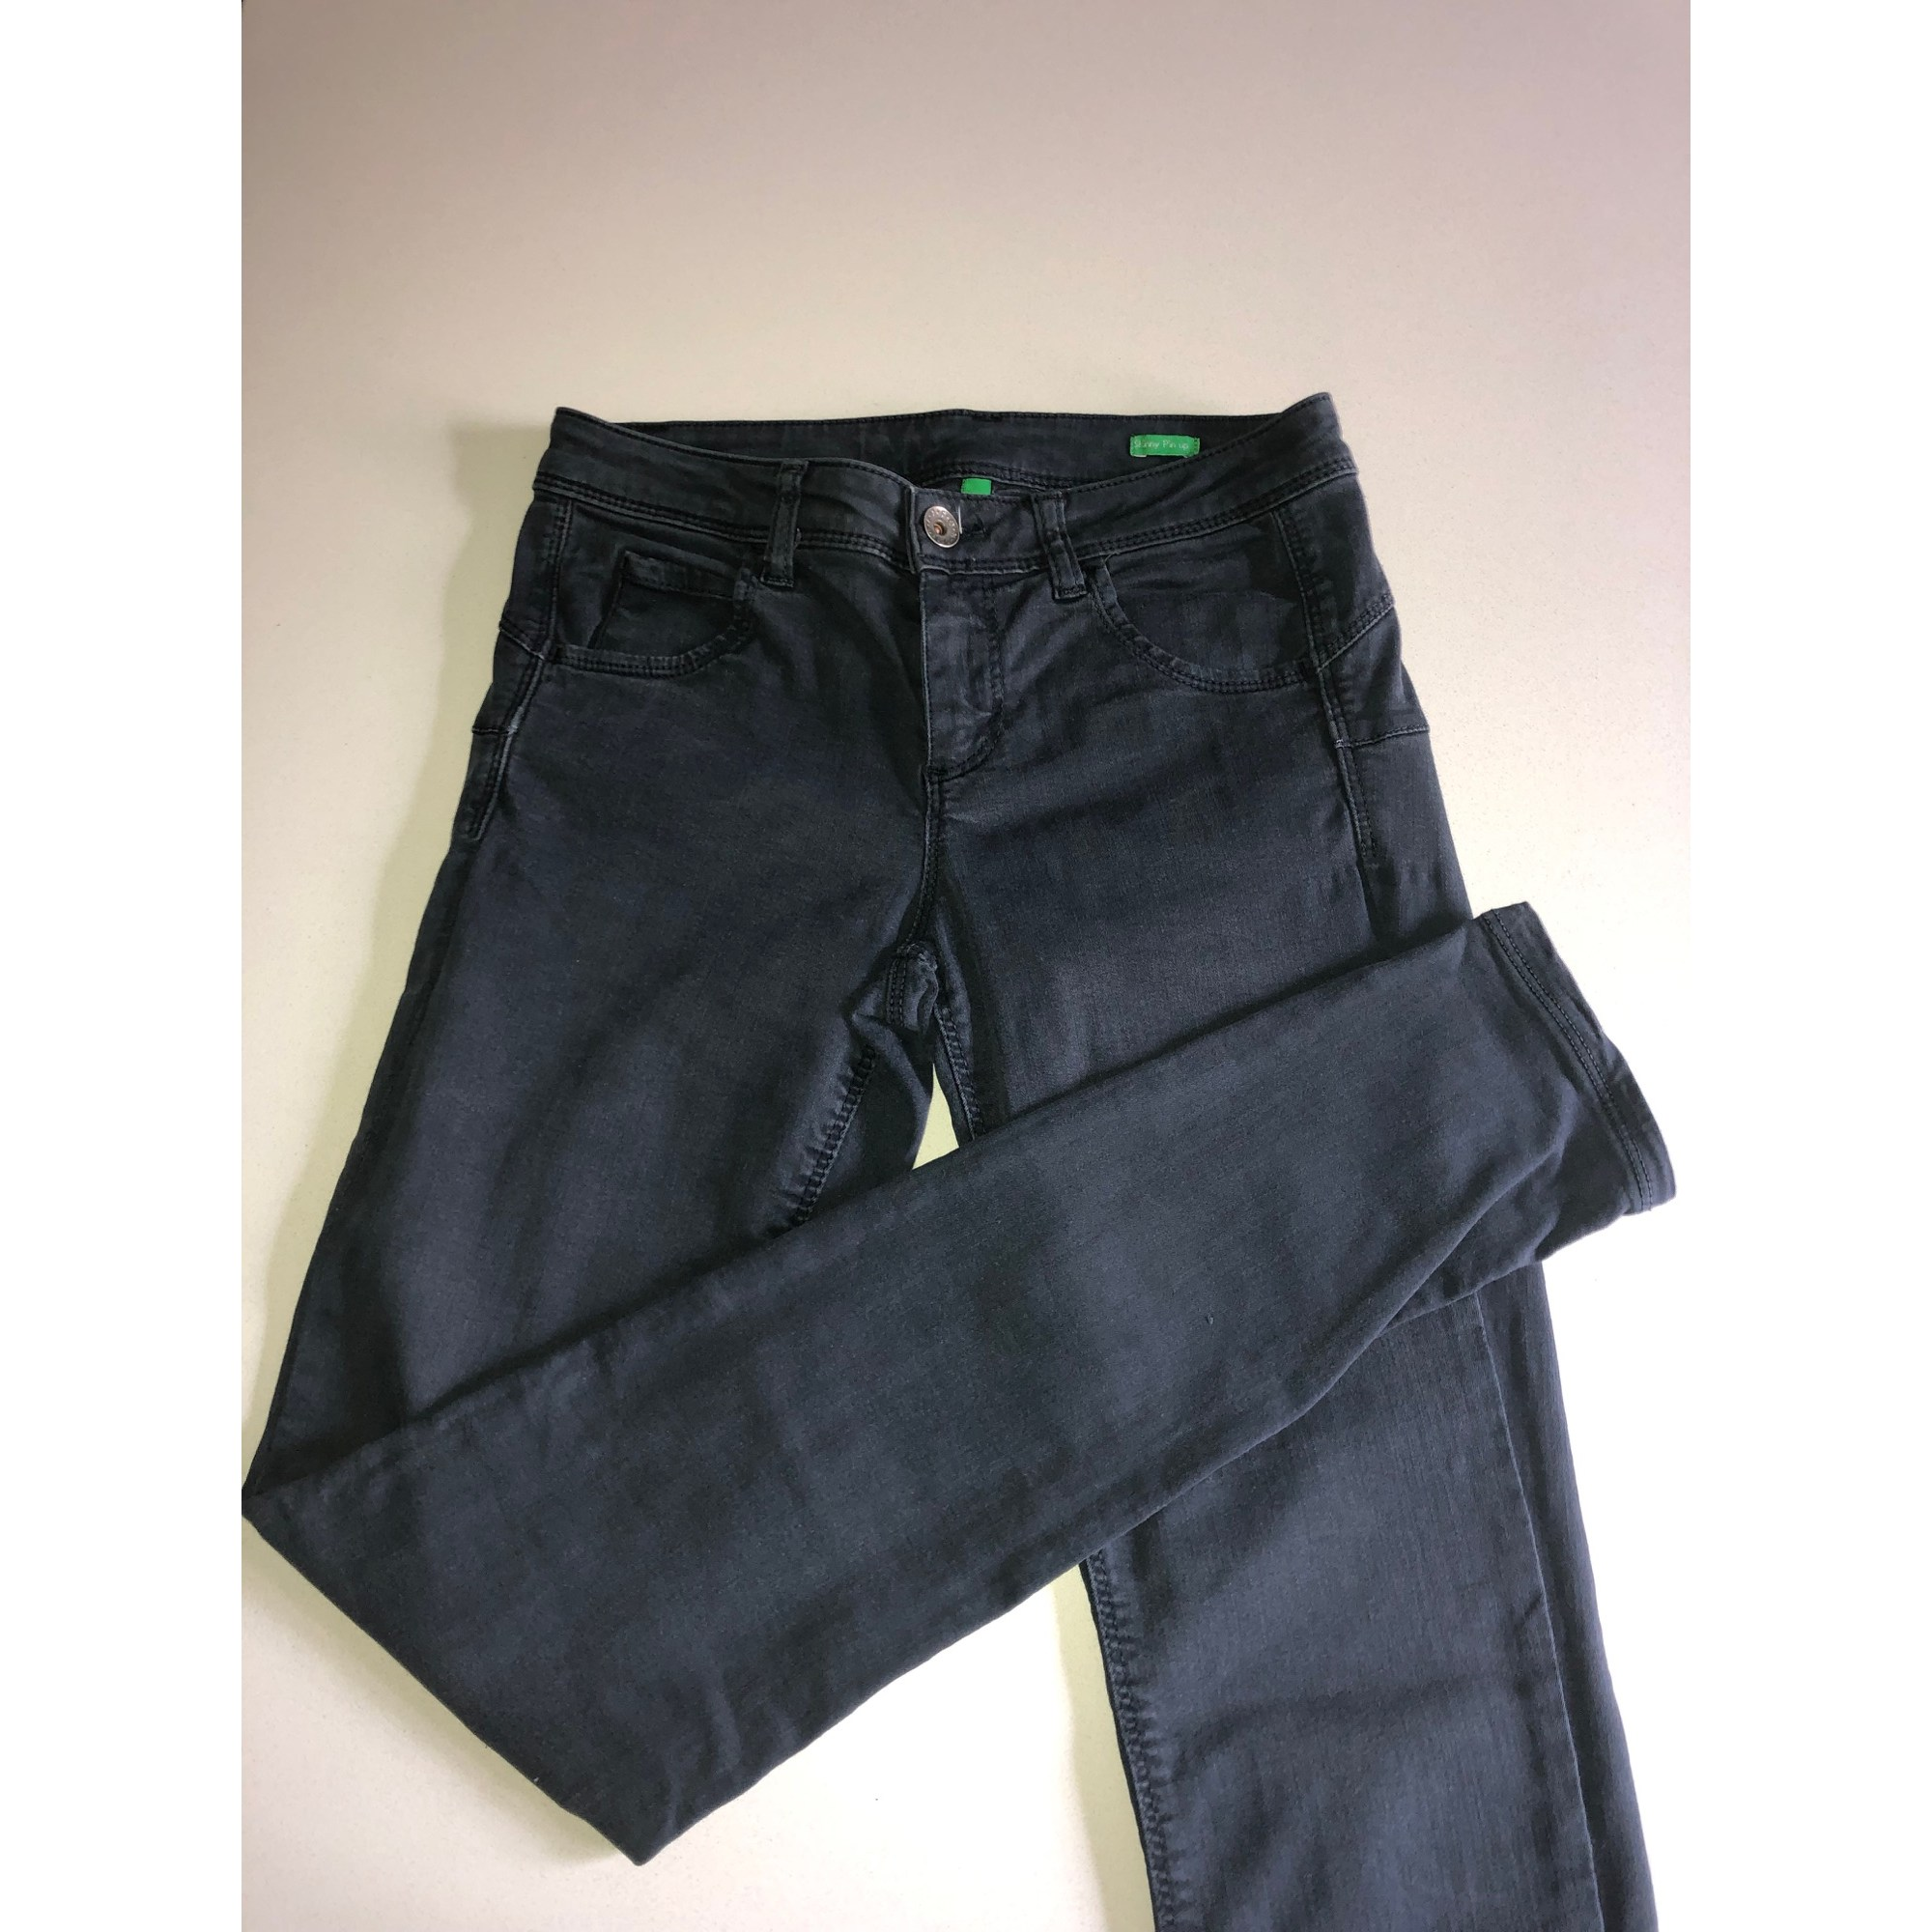 Jean slim  UNITED COLORS OF BENETTON Gris, anthracite